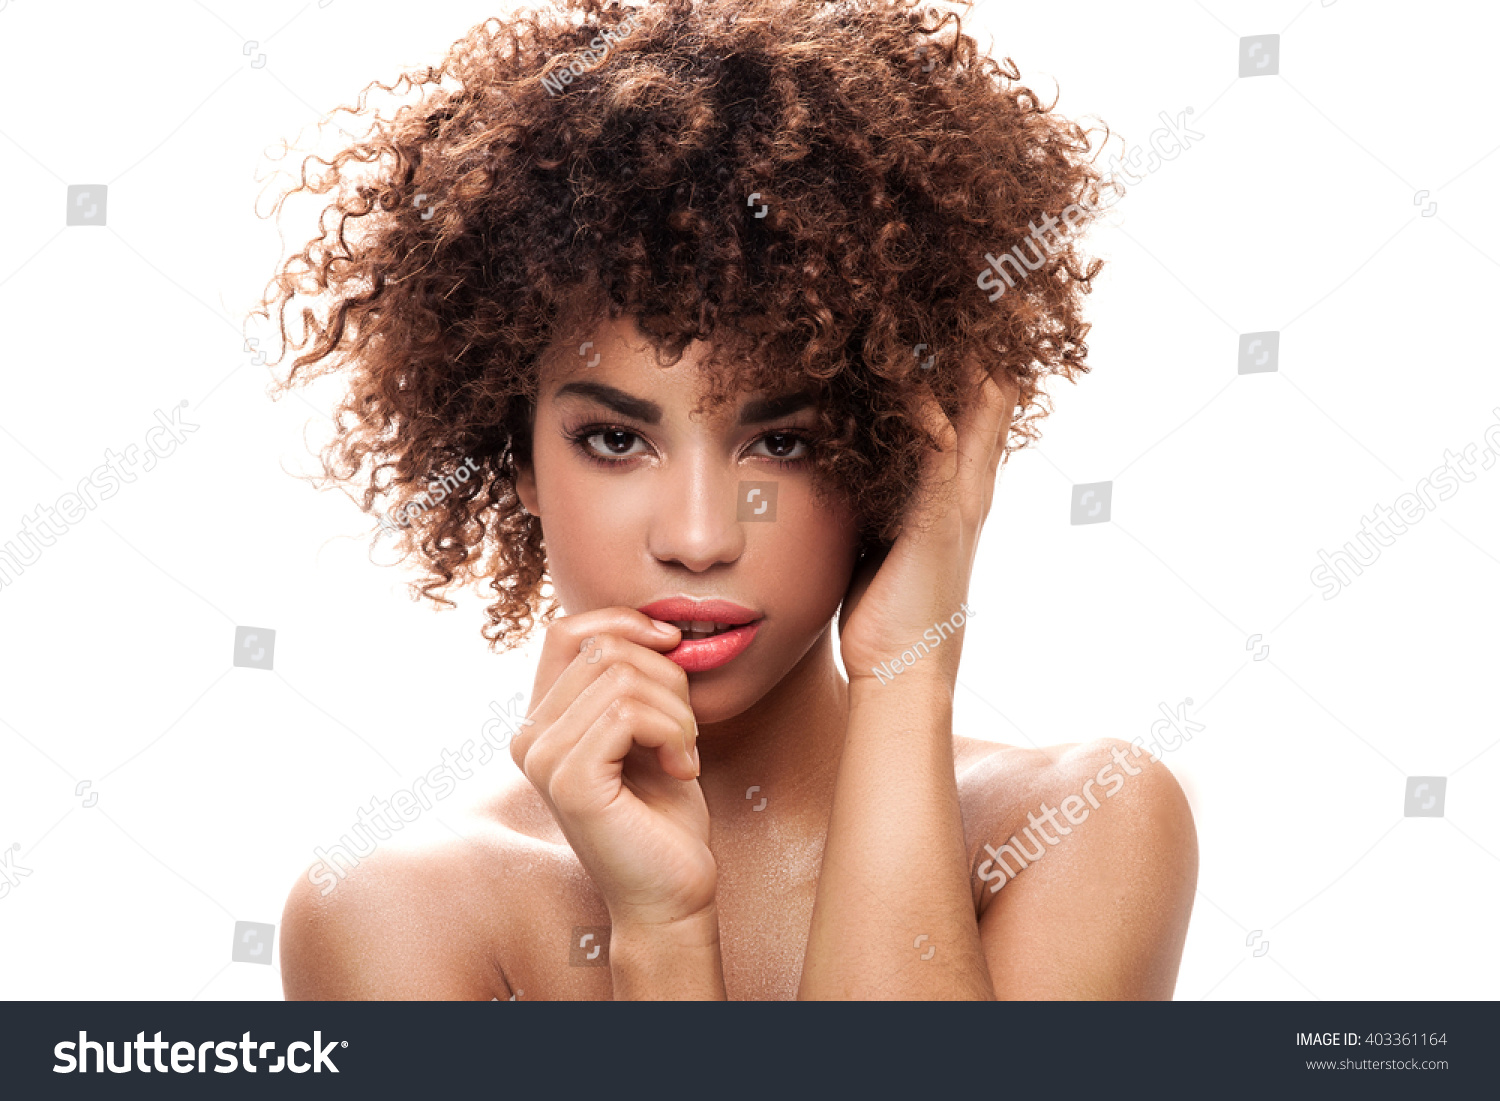 Stunning Beautiful Young African American Black Stock Photo 403361164 Shutterstock